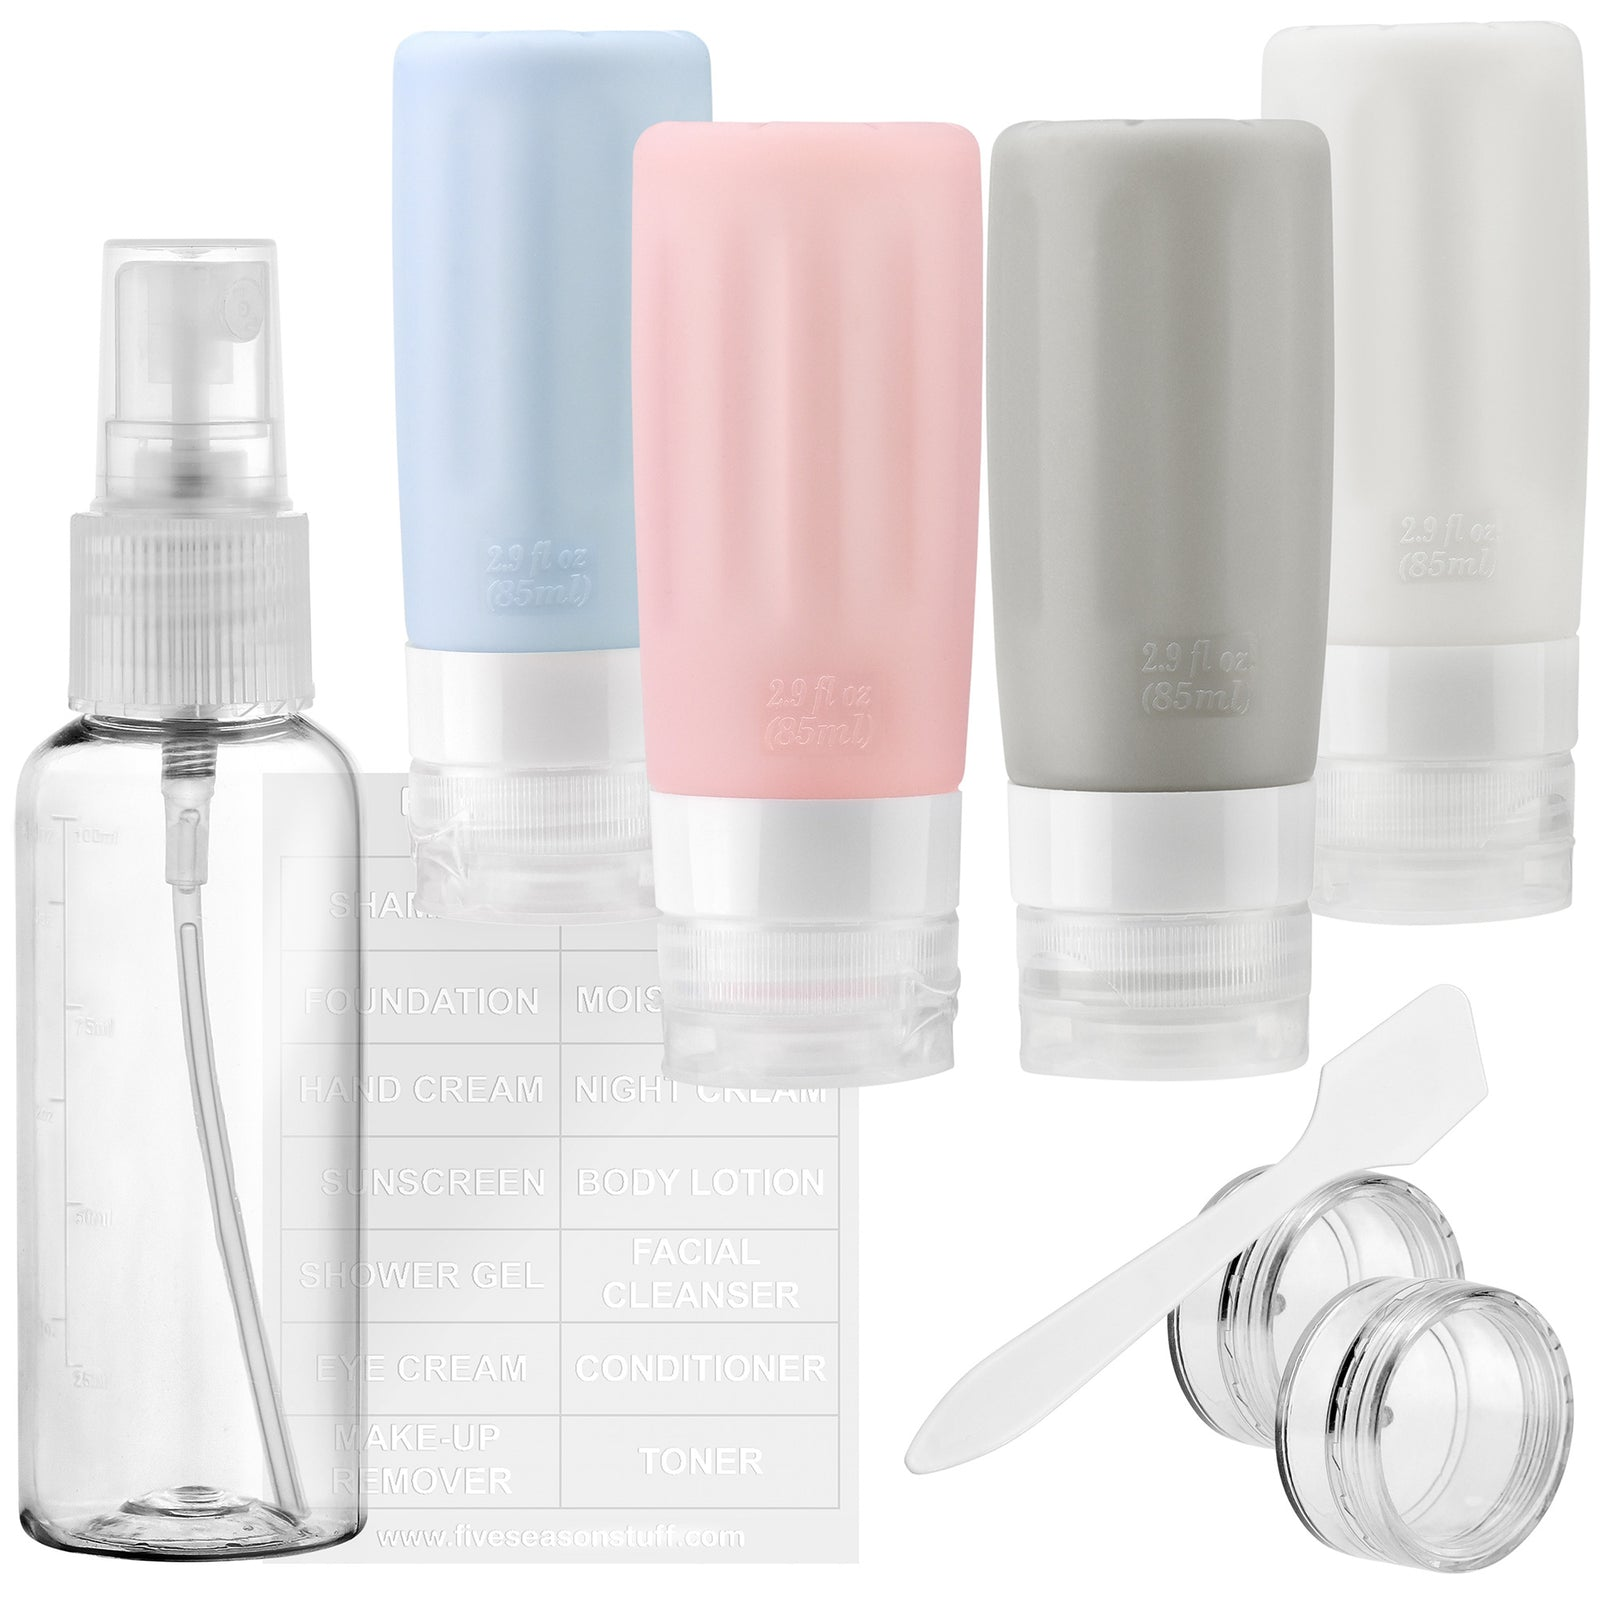 FiveSeasonStuff TSA Approved Silicone Leak Proof Travel Squeeze Bottles and Travel Spray Bottle with TSA Toiletry Bag (7 Pack)Warm Pastel (Dusty Blue, Dusty Pink, White & Gray)